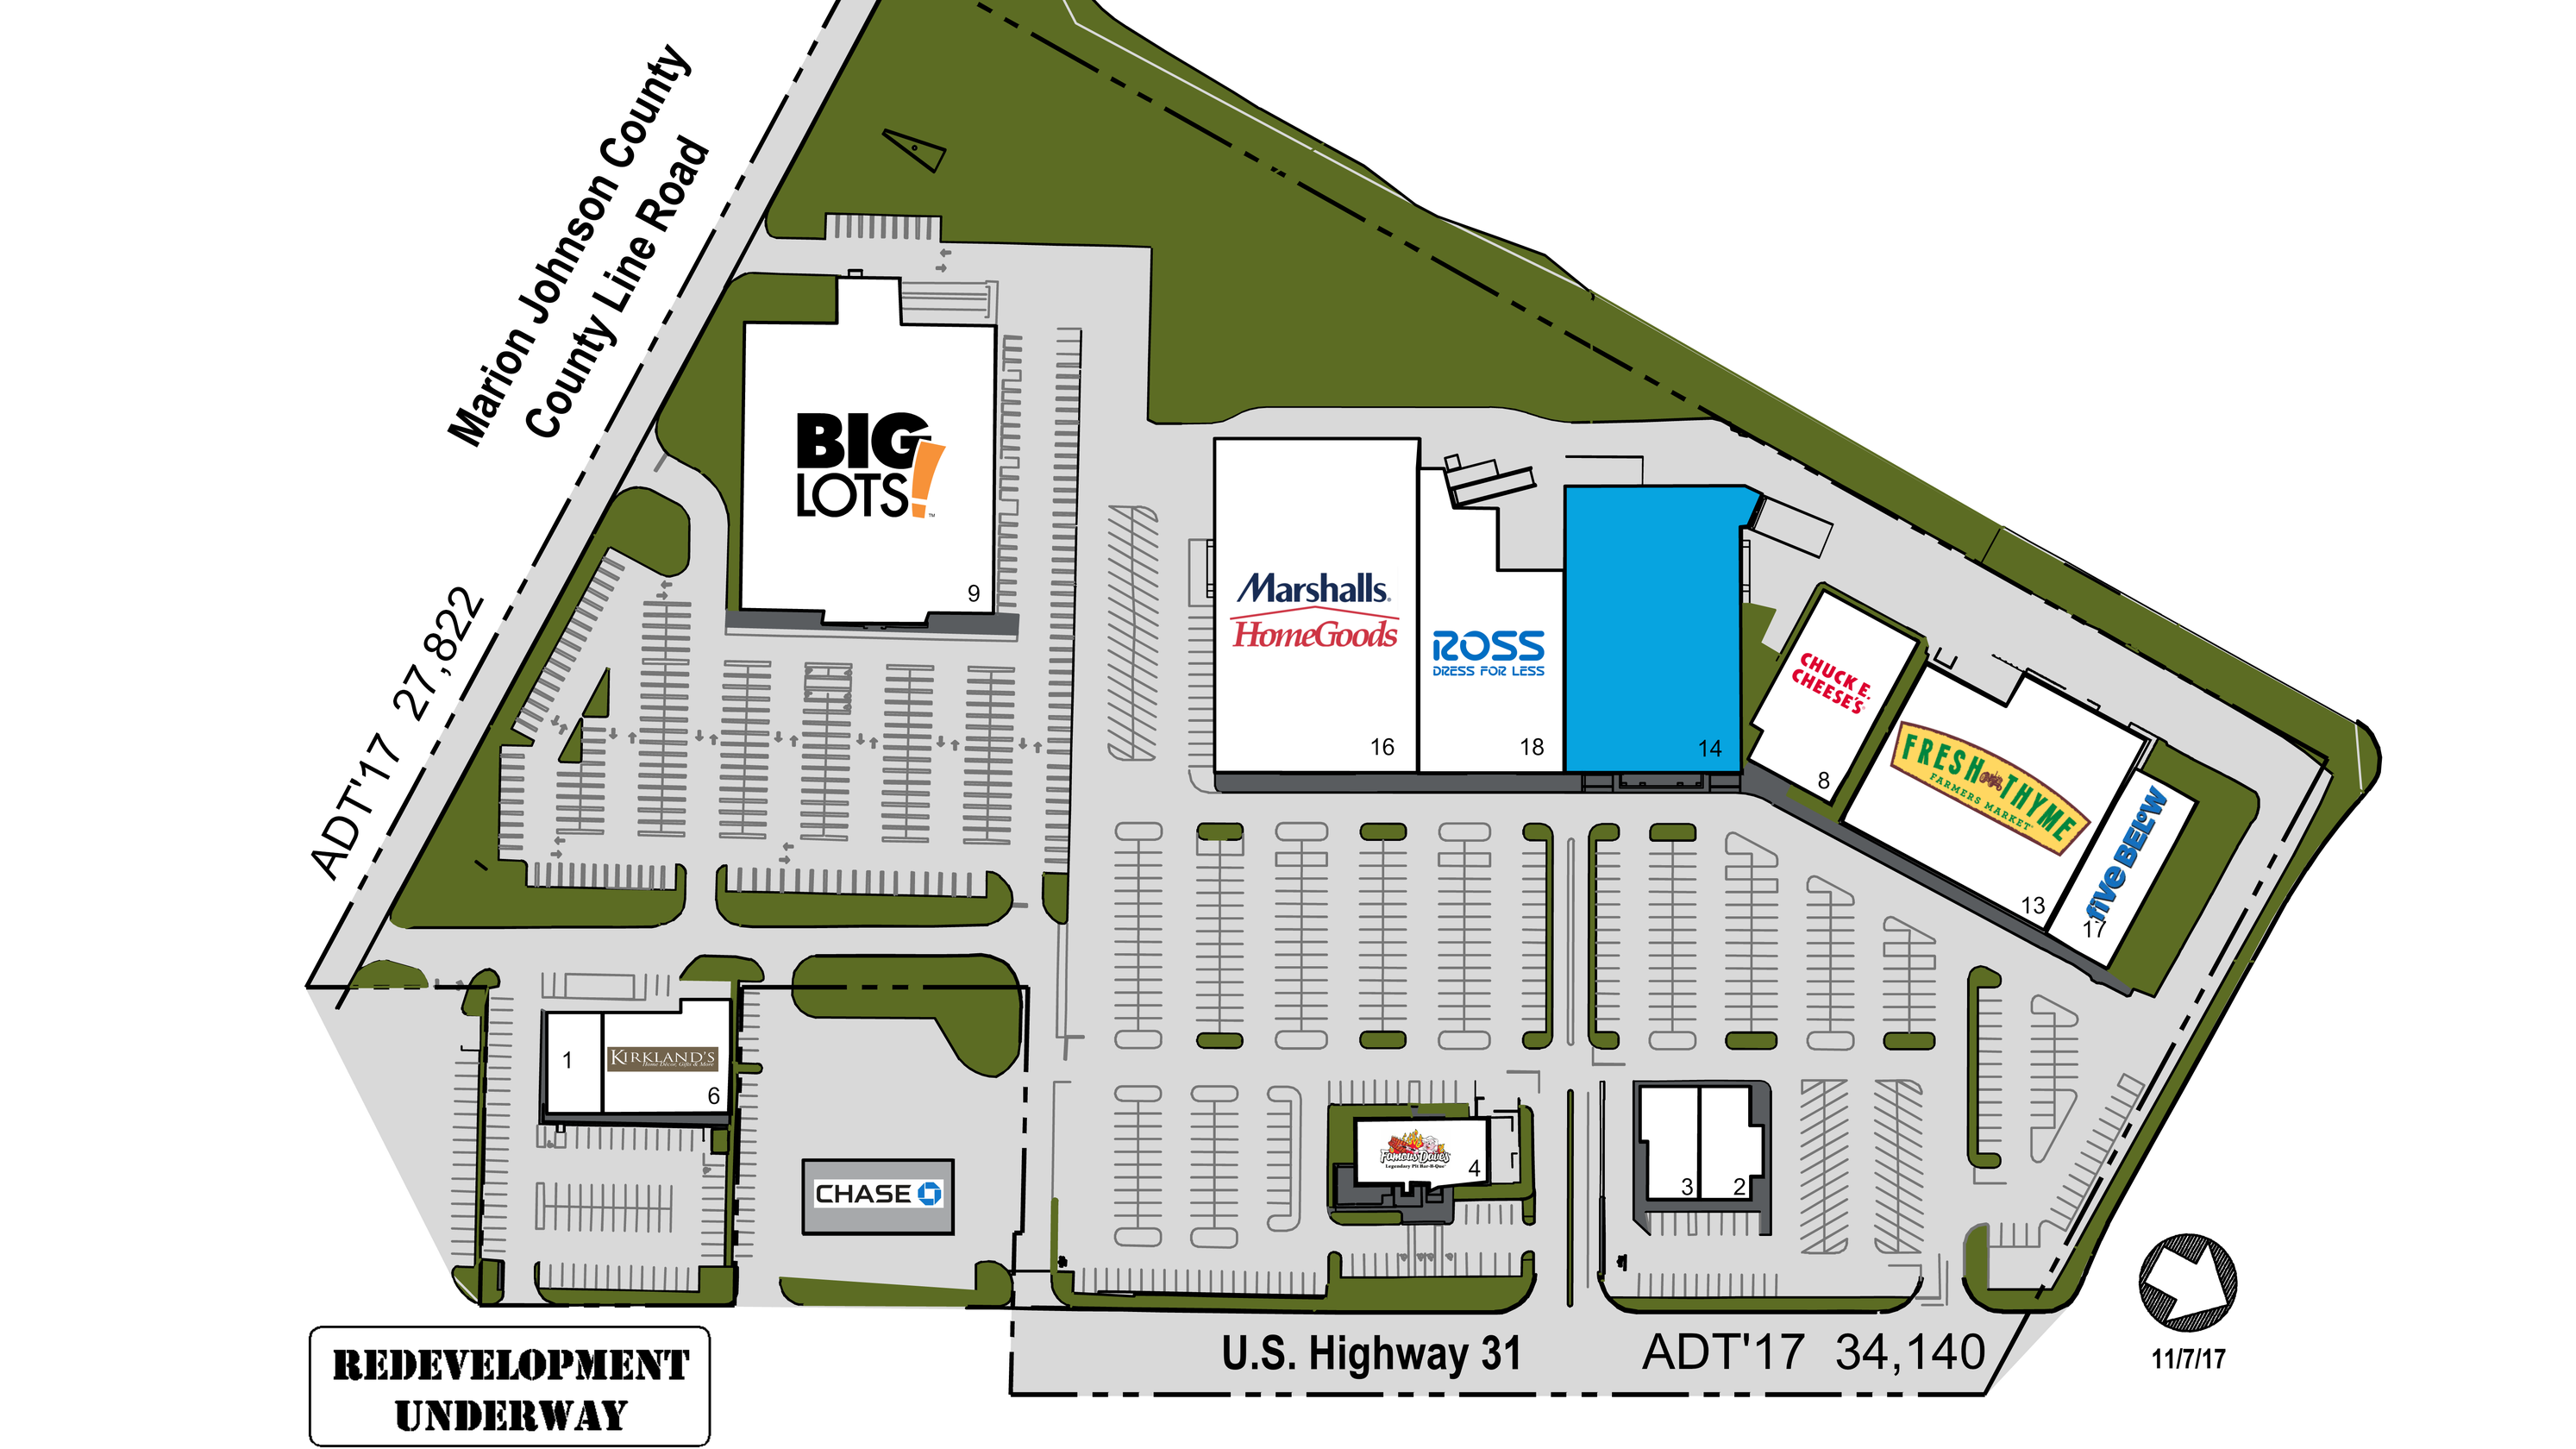 HomeGoods, Five Below, Marshalls, more coming to Greenwood, Indiana